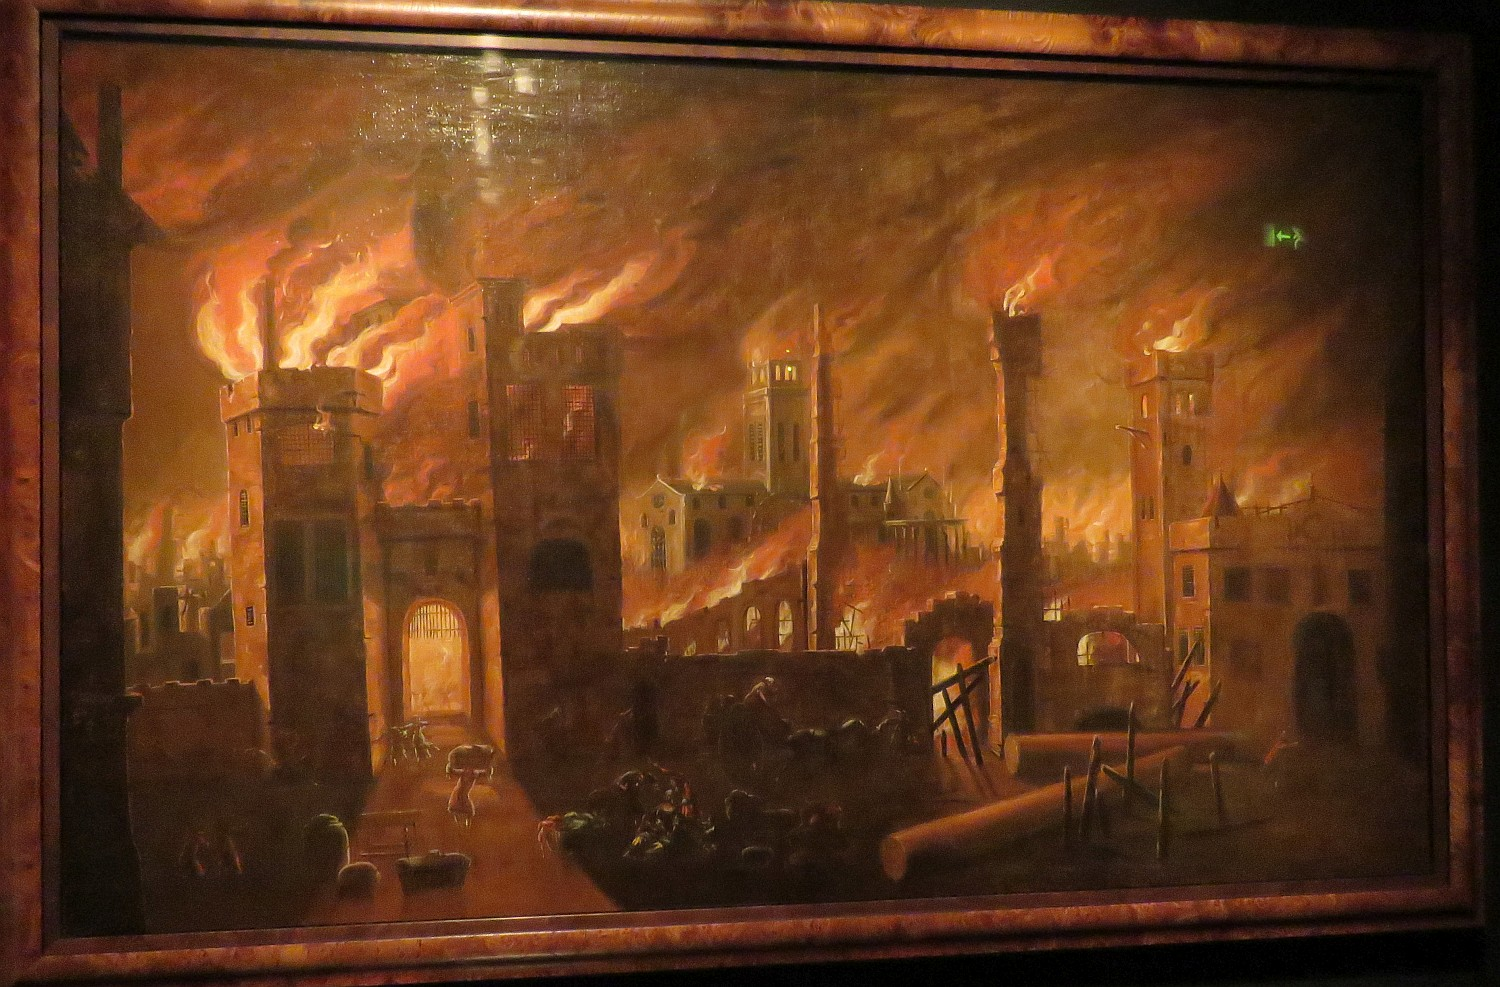 London burns - 1666.  Painting by Jan Griffier the Elder in 1675 shows Newgate in foreground with old St. Paul's burning in the back.  More photos follow the text.